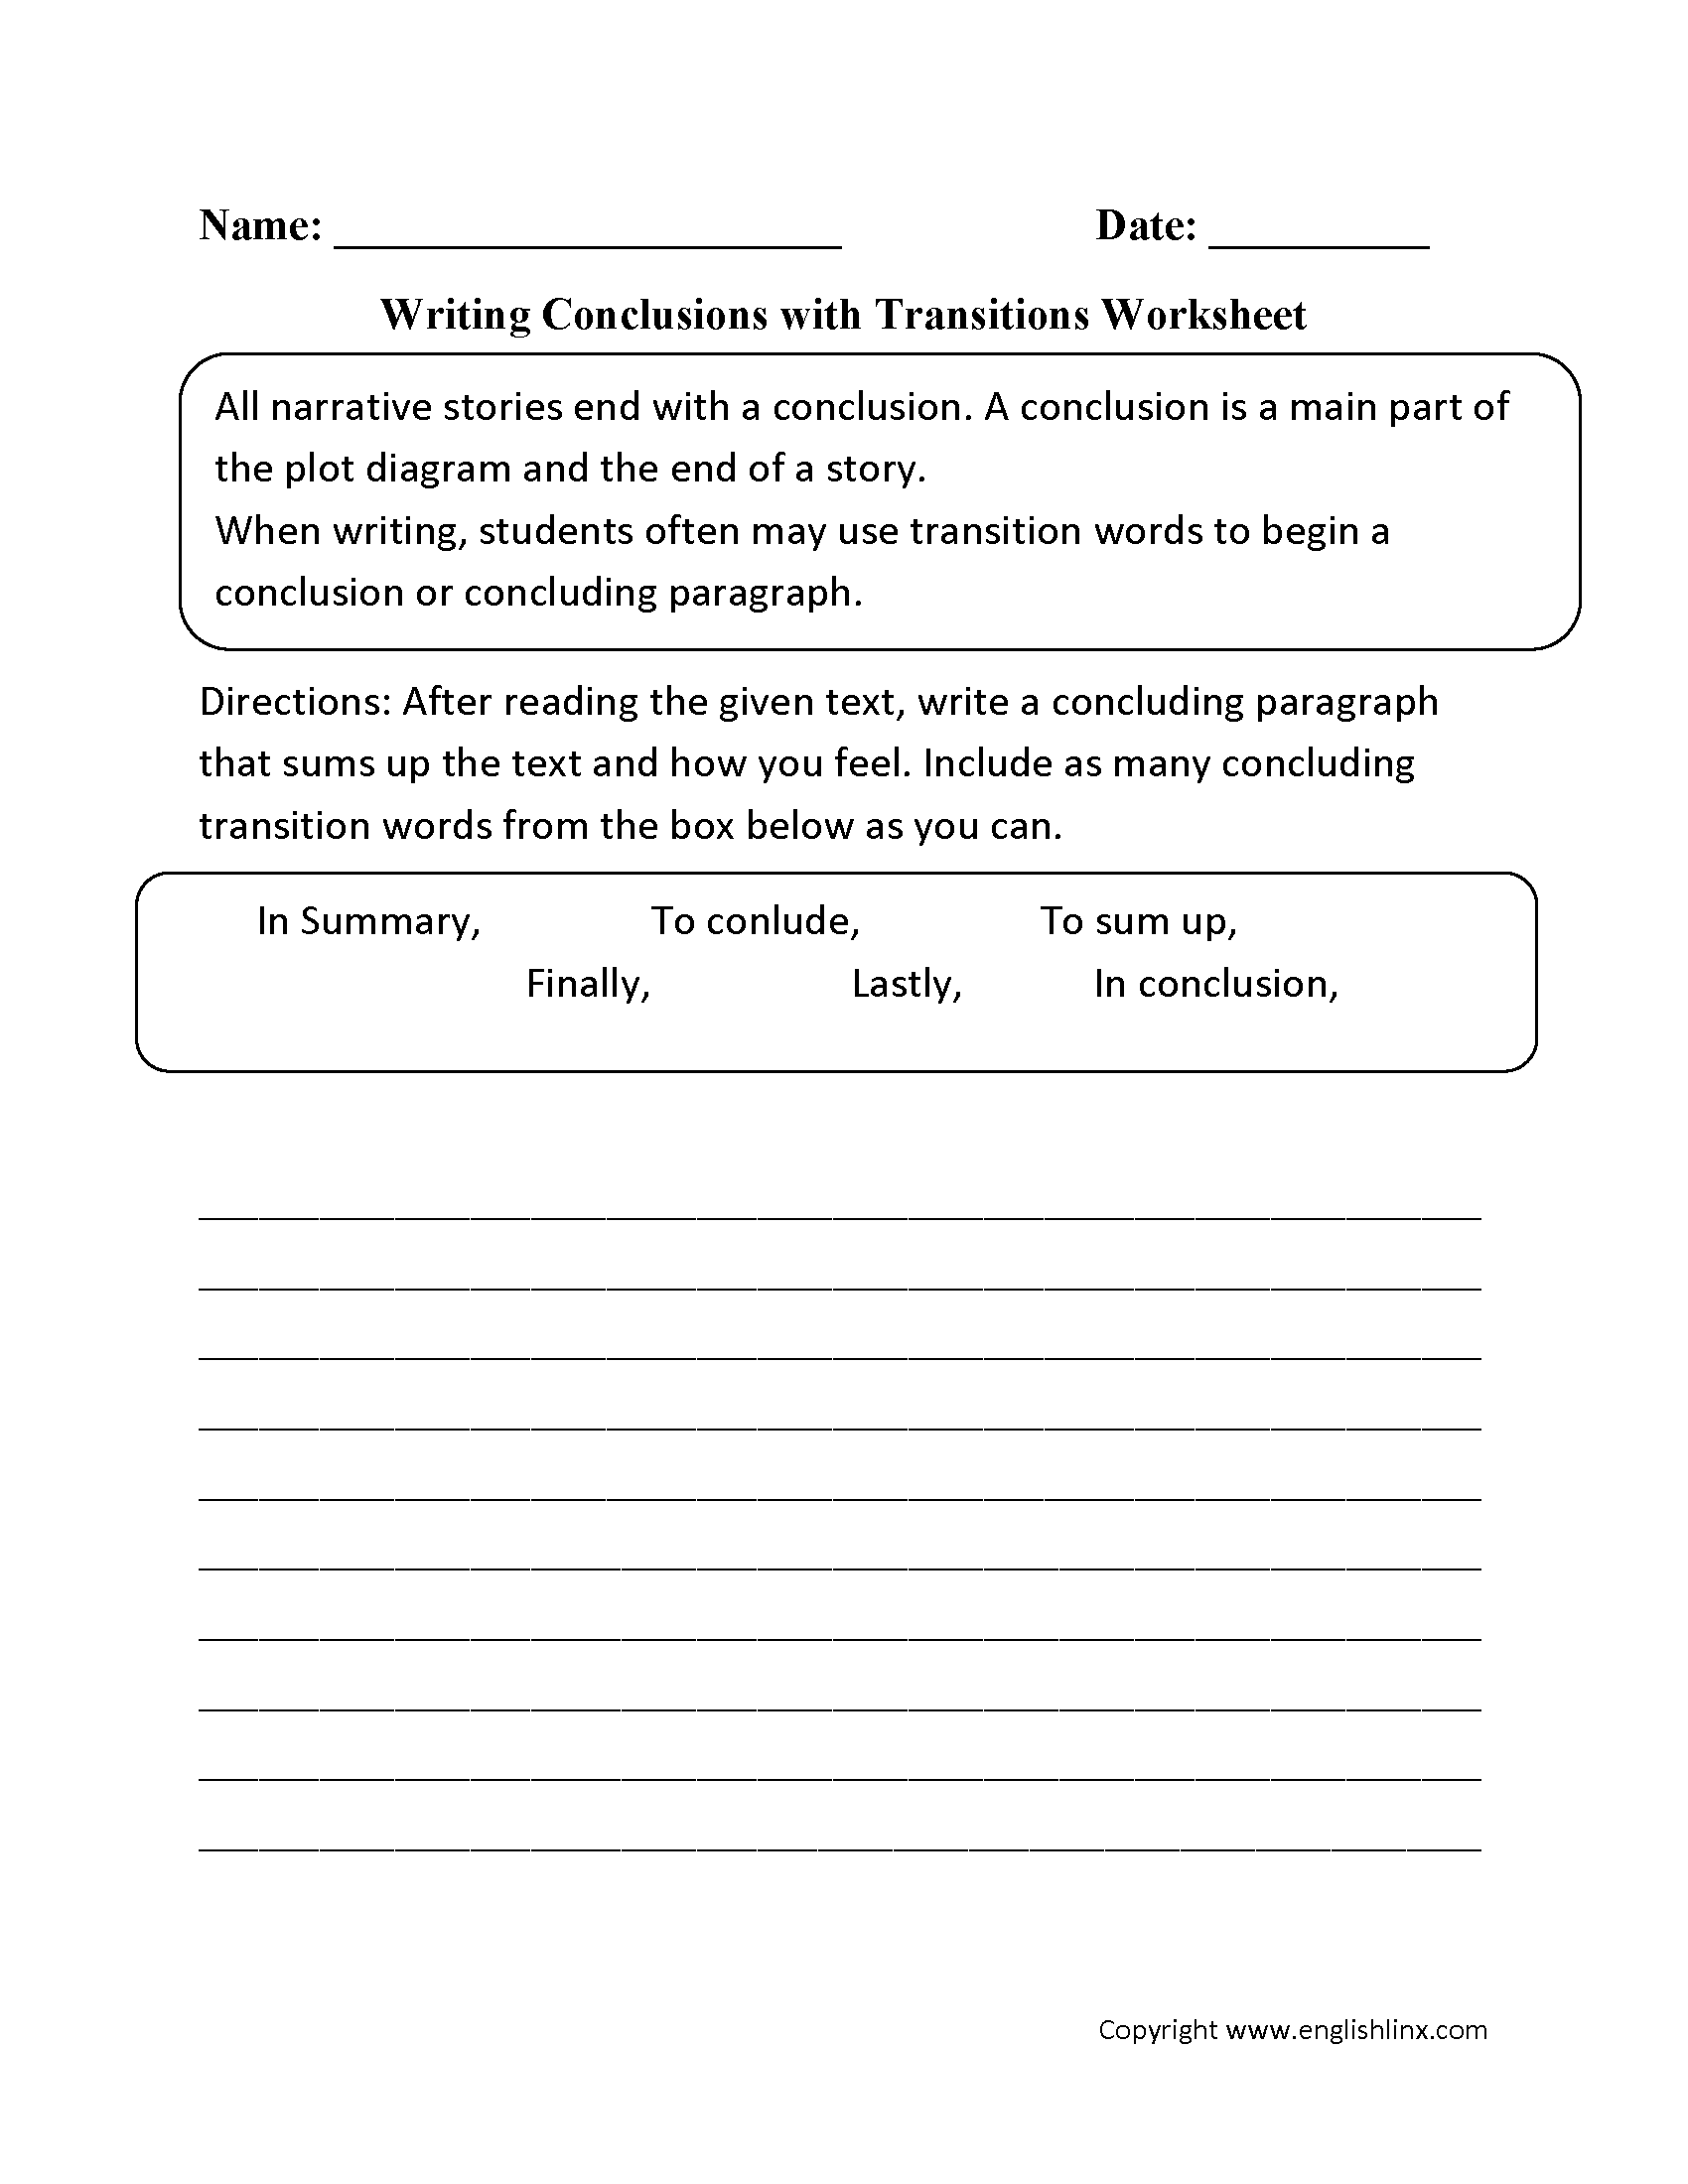 Worksheets Transition Words Worksheet writing conclusions worksheets with transitions worksheets